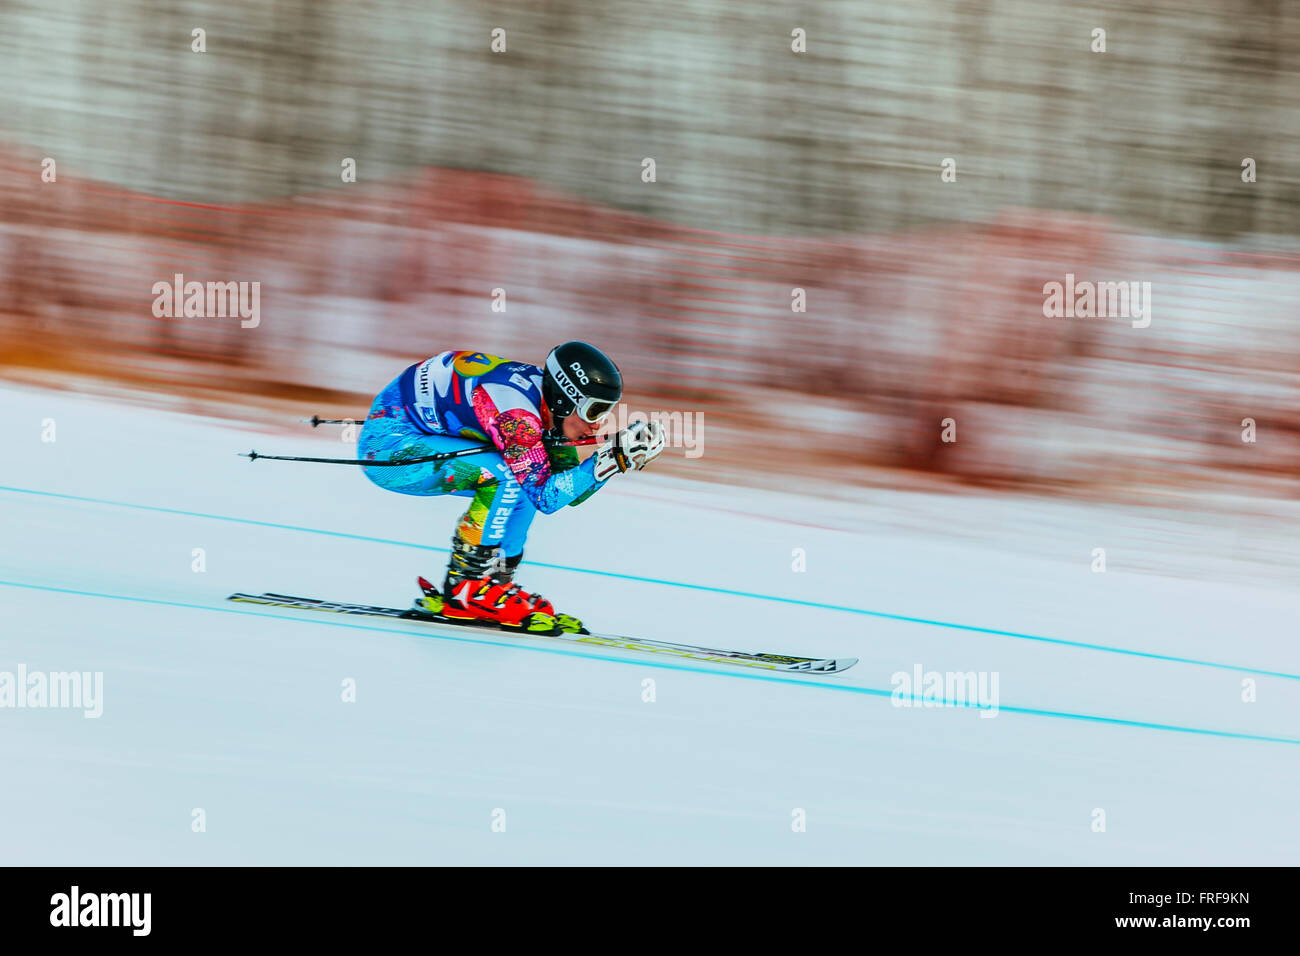 downhill racer young woman in competition. background blur effect during Russian Cup in alpine skiing - Stock Image